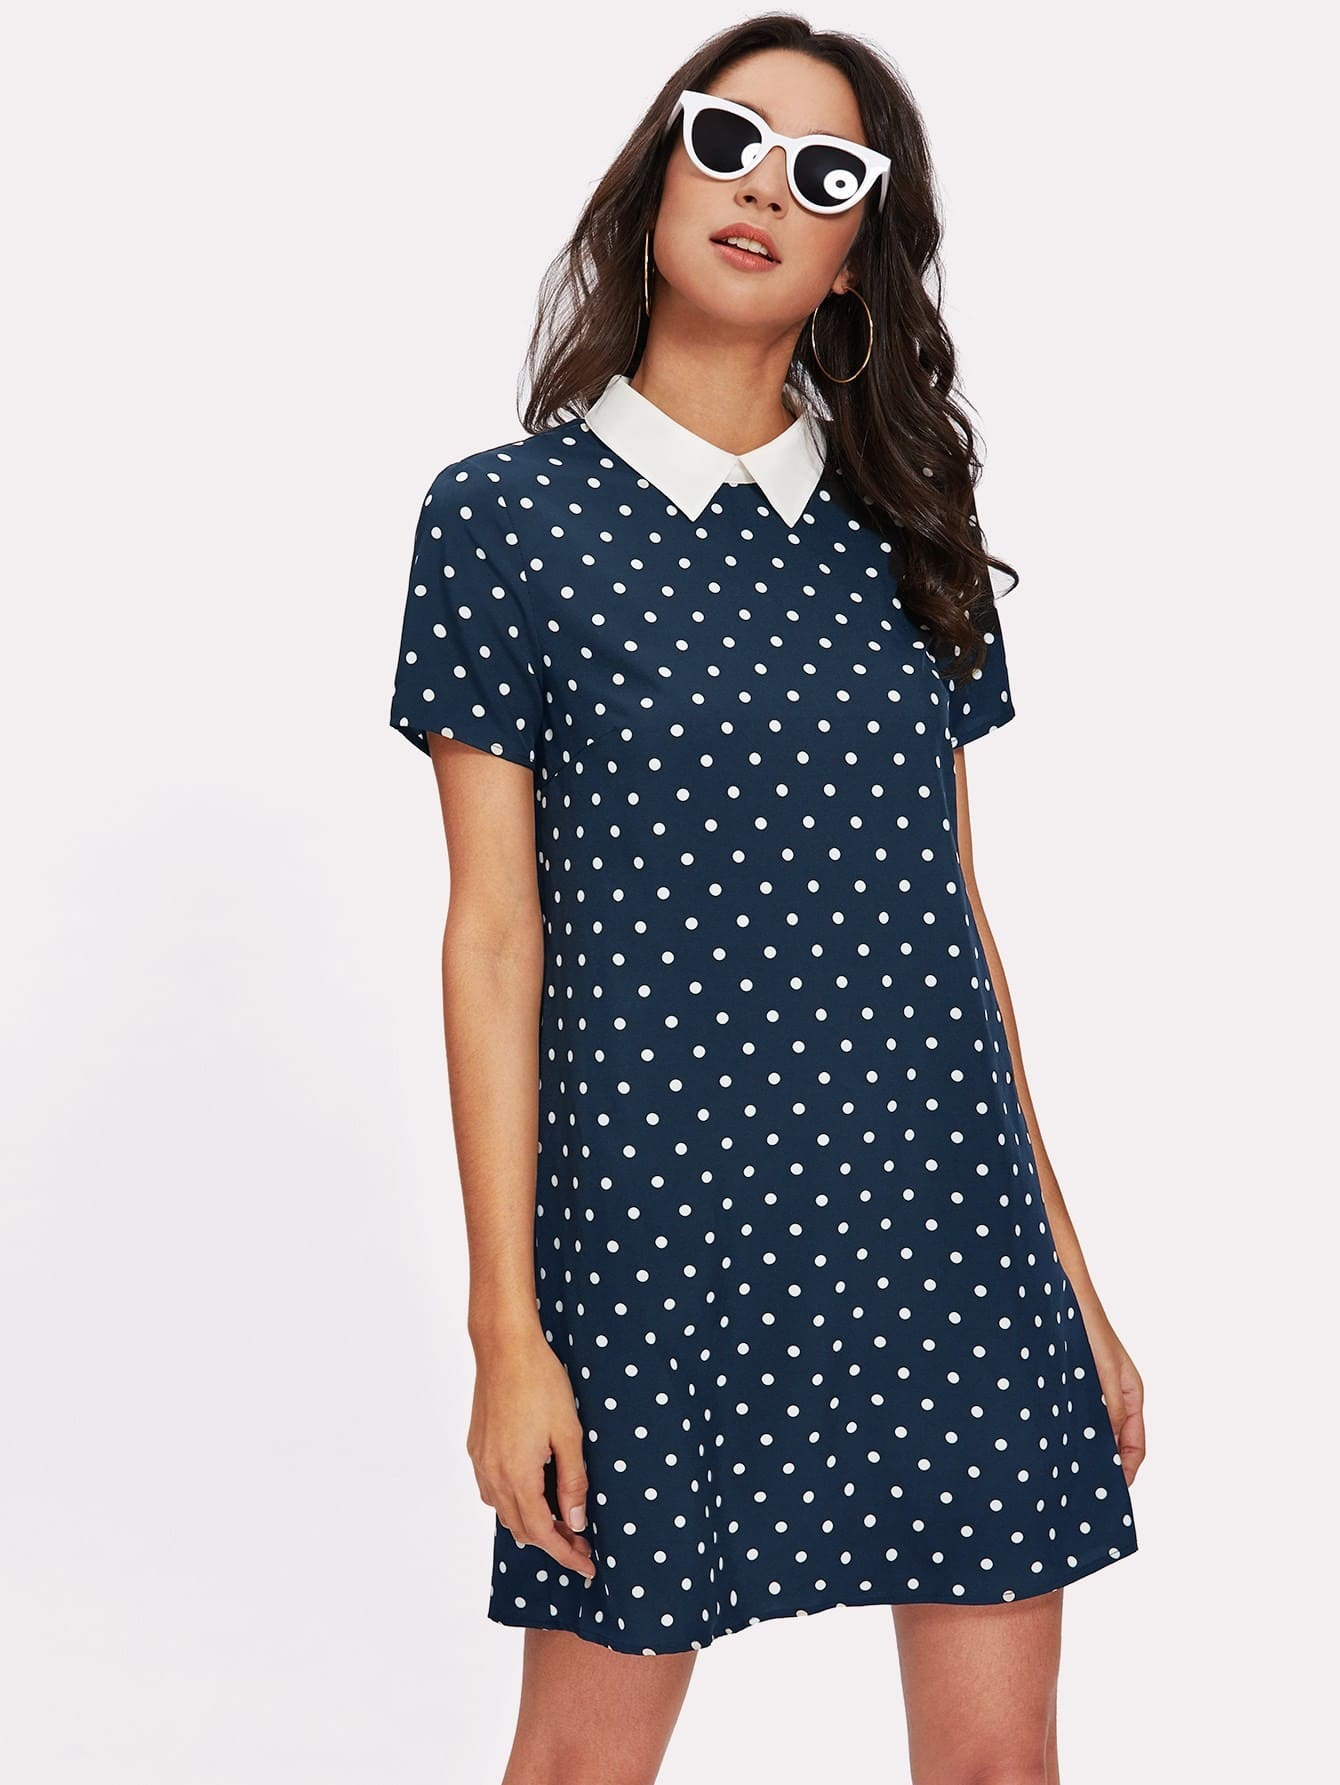 Contrast Collar Polka Dot Dress polka dot slit hem contrast dress